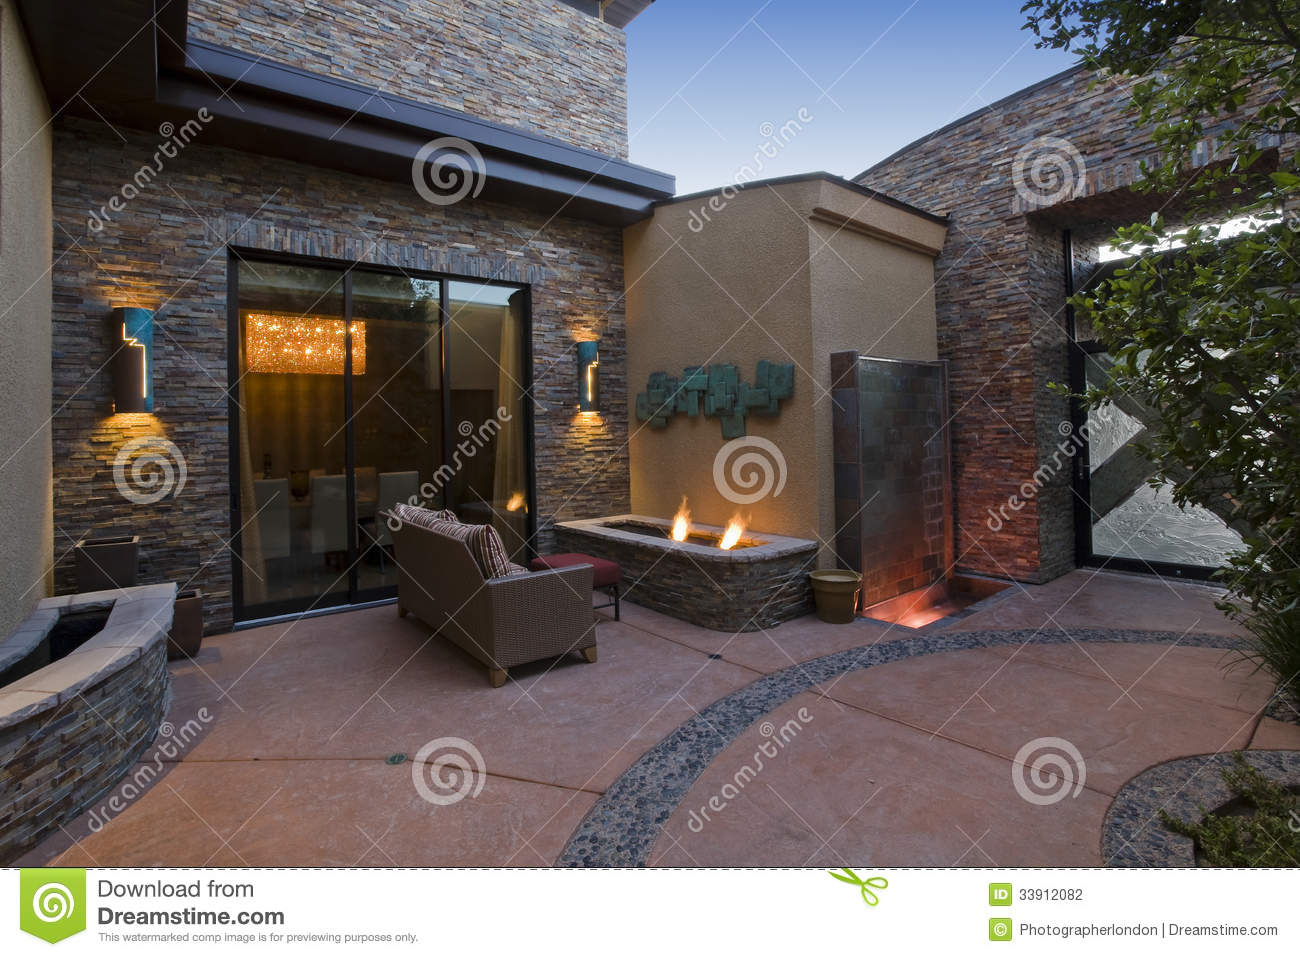 Gas Fire Pit And Sofa In Courtyard